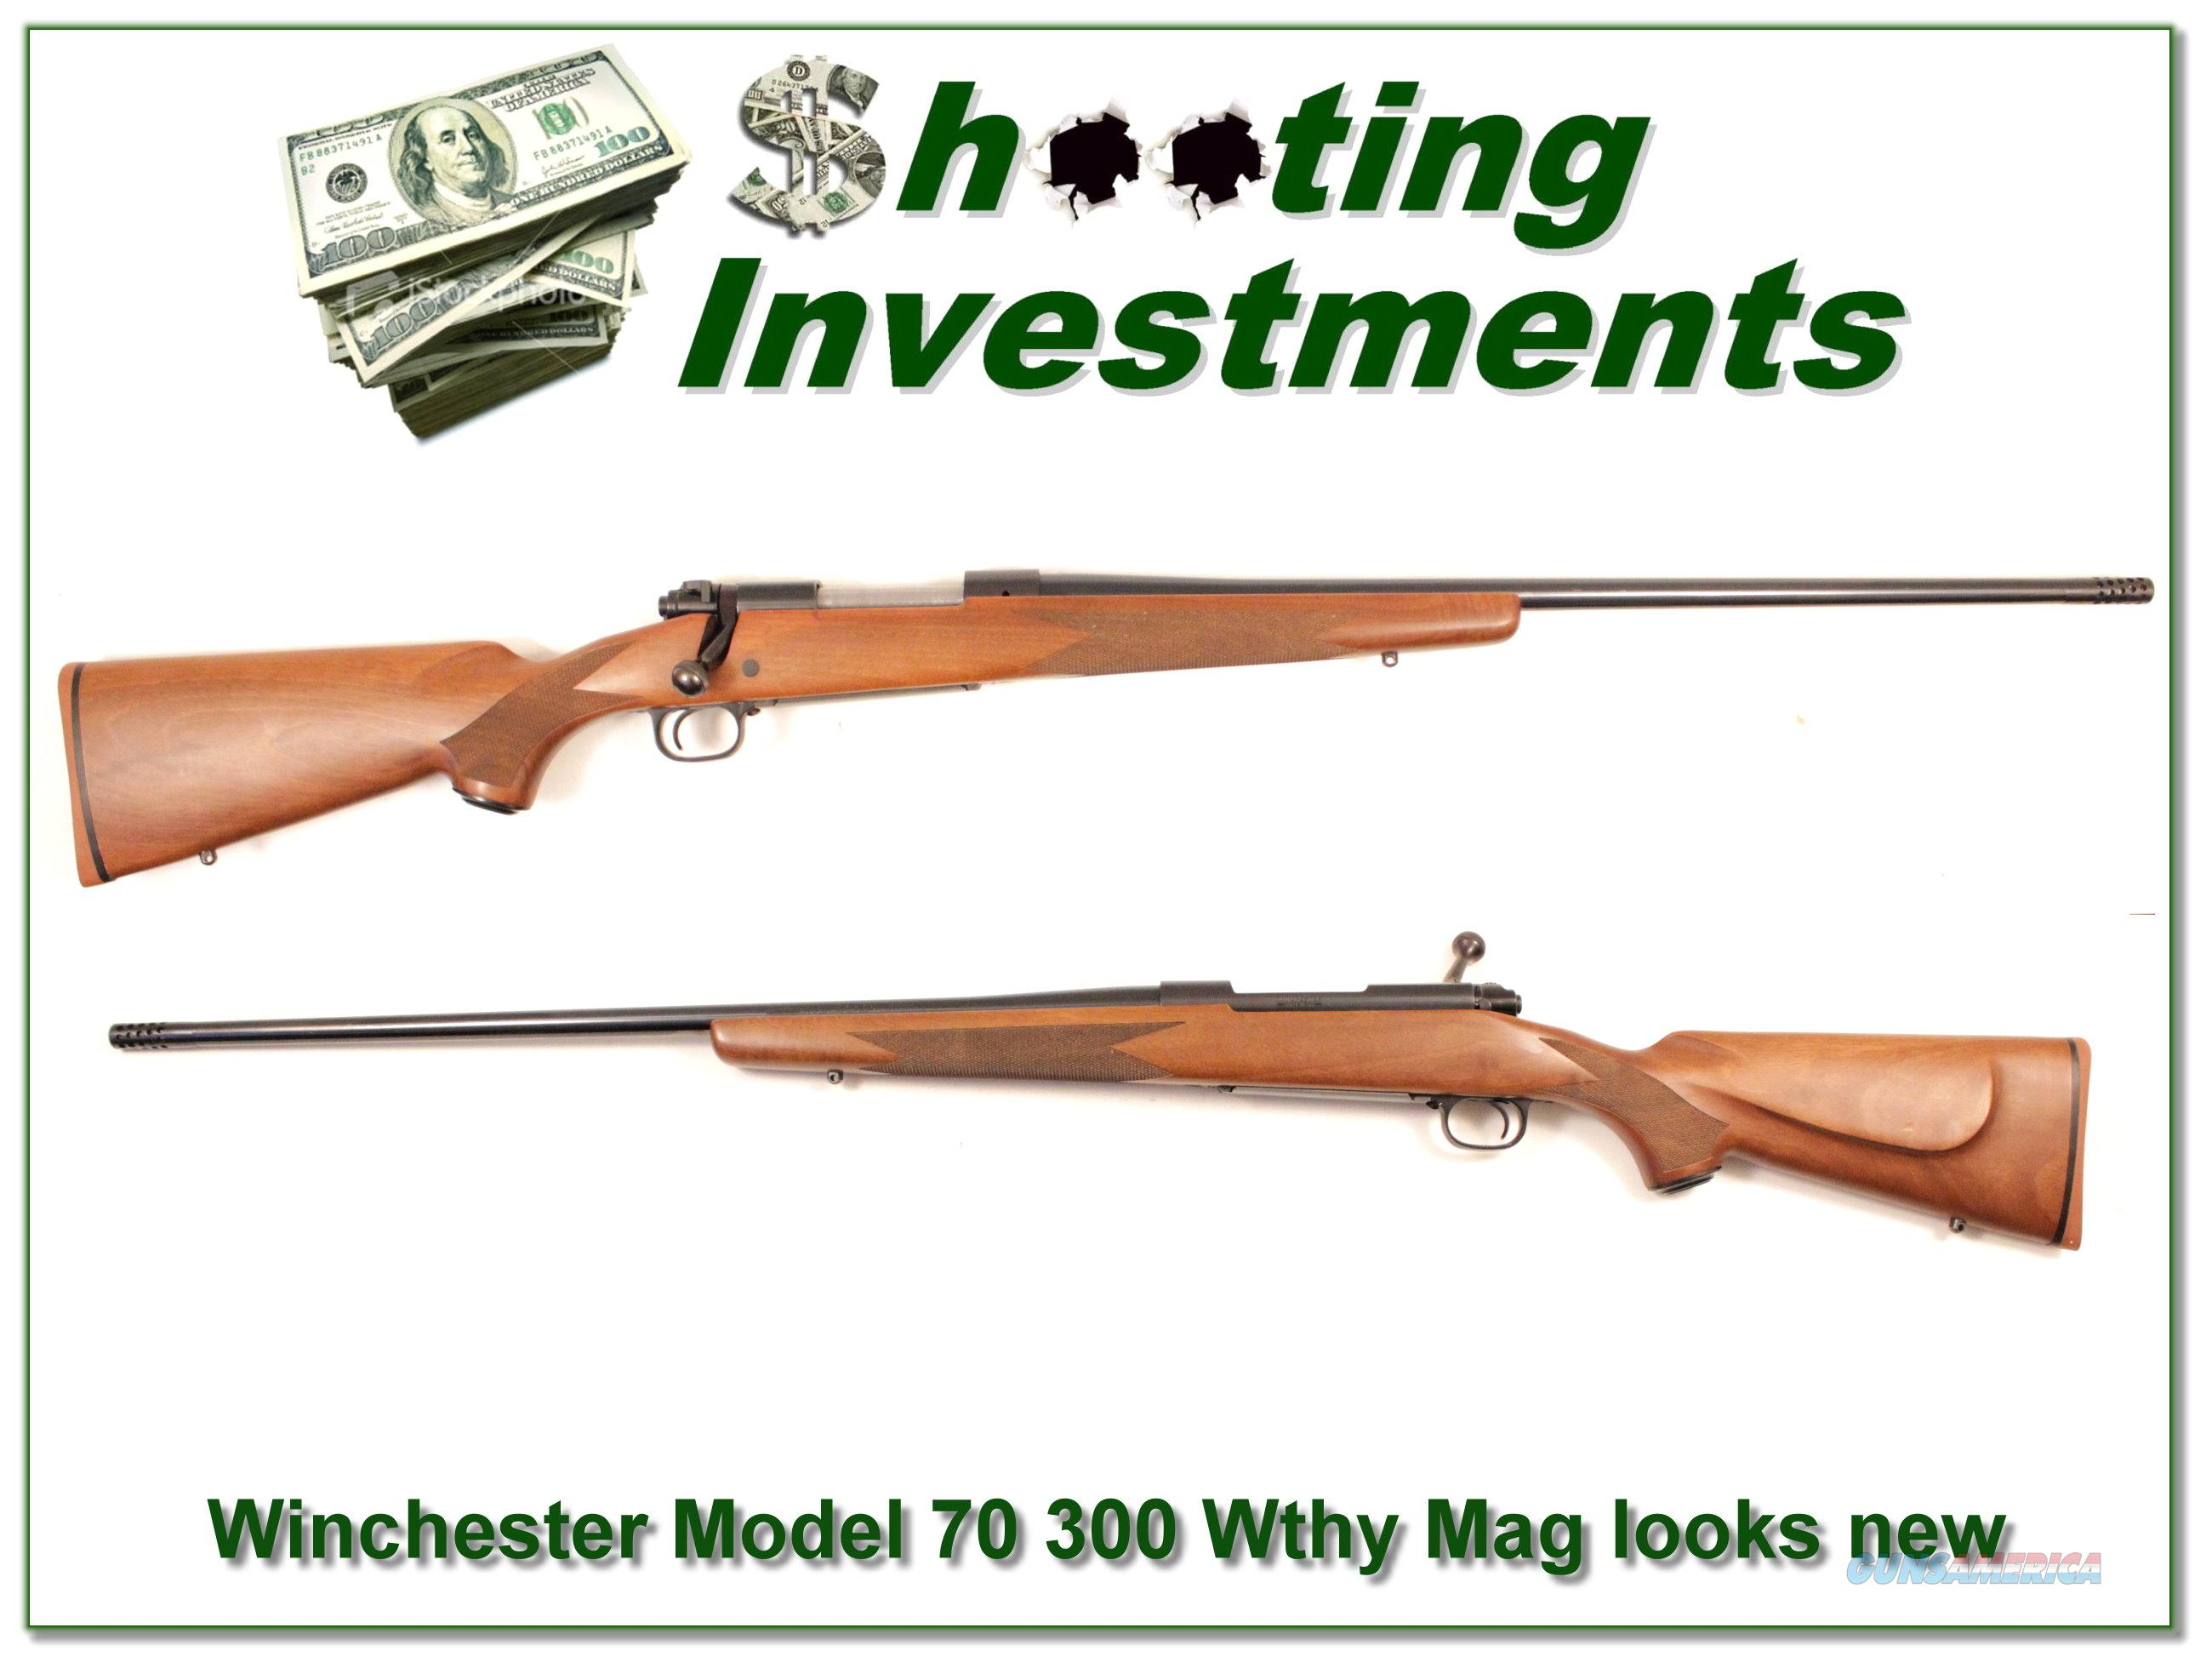 Winchester Model 70 300 Weatherby Exc Cond!  Guns > Rifles > Winchester Rifles - Modern Bolt/Auto/Single > Other Bolt Action